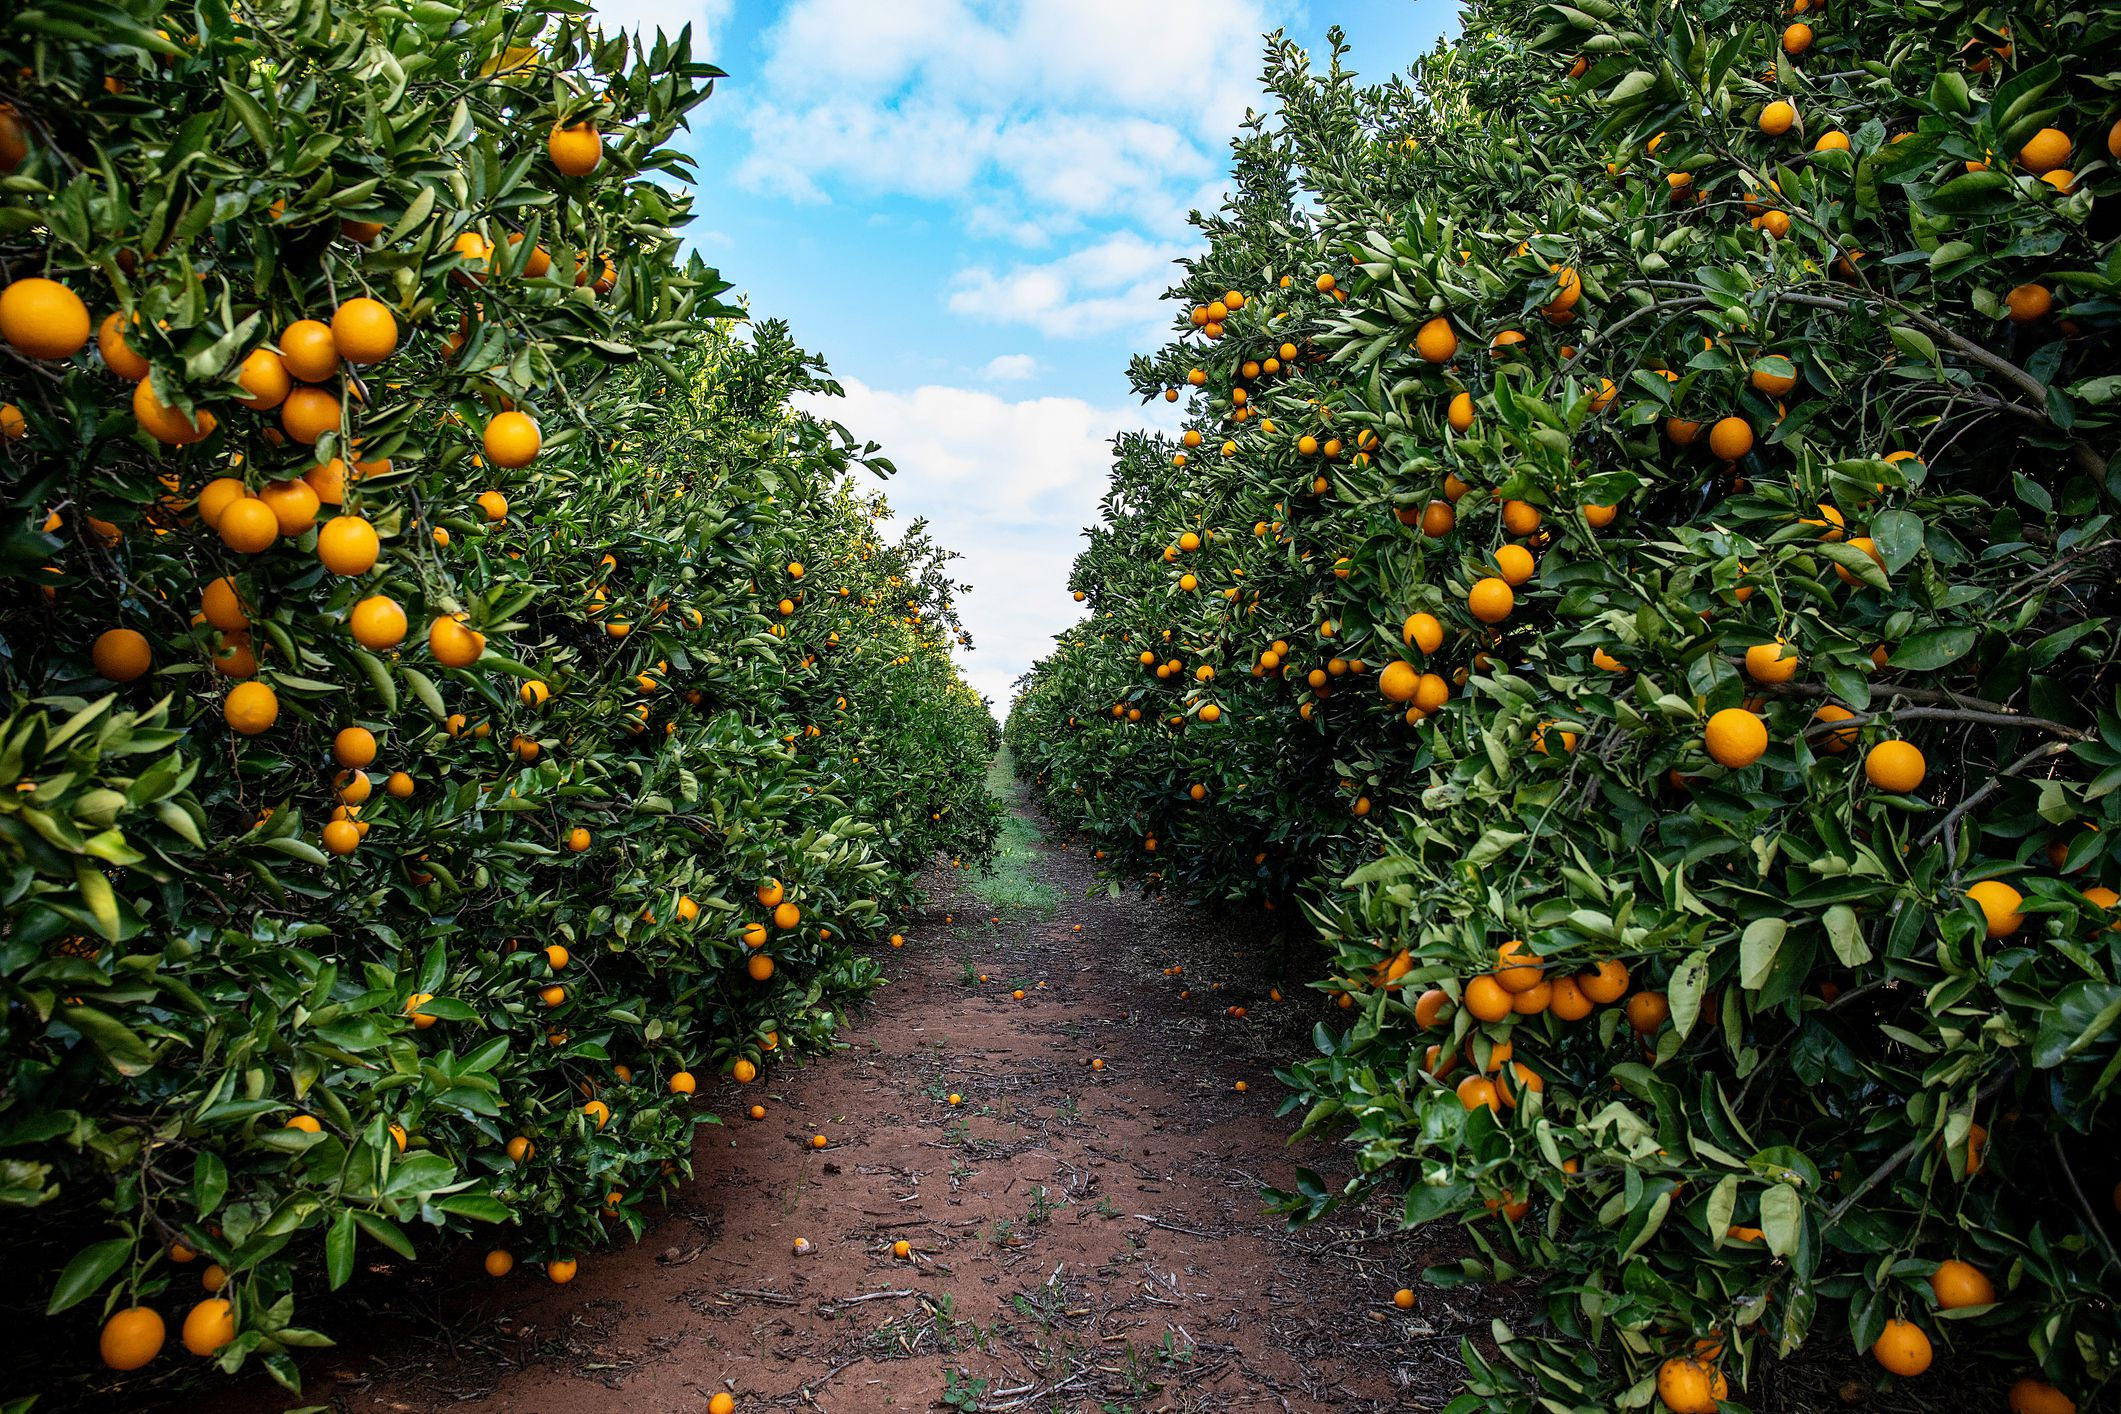 Pick Your Own Farms And Orchards In Northern Virginia